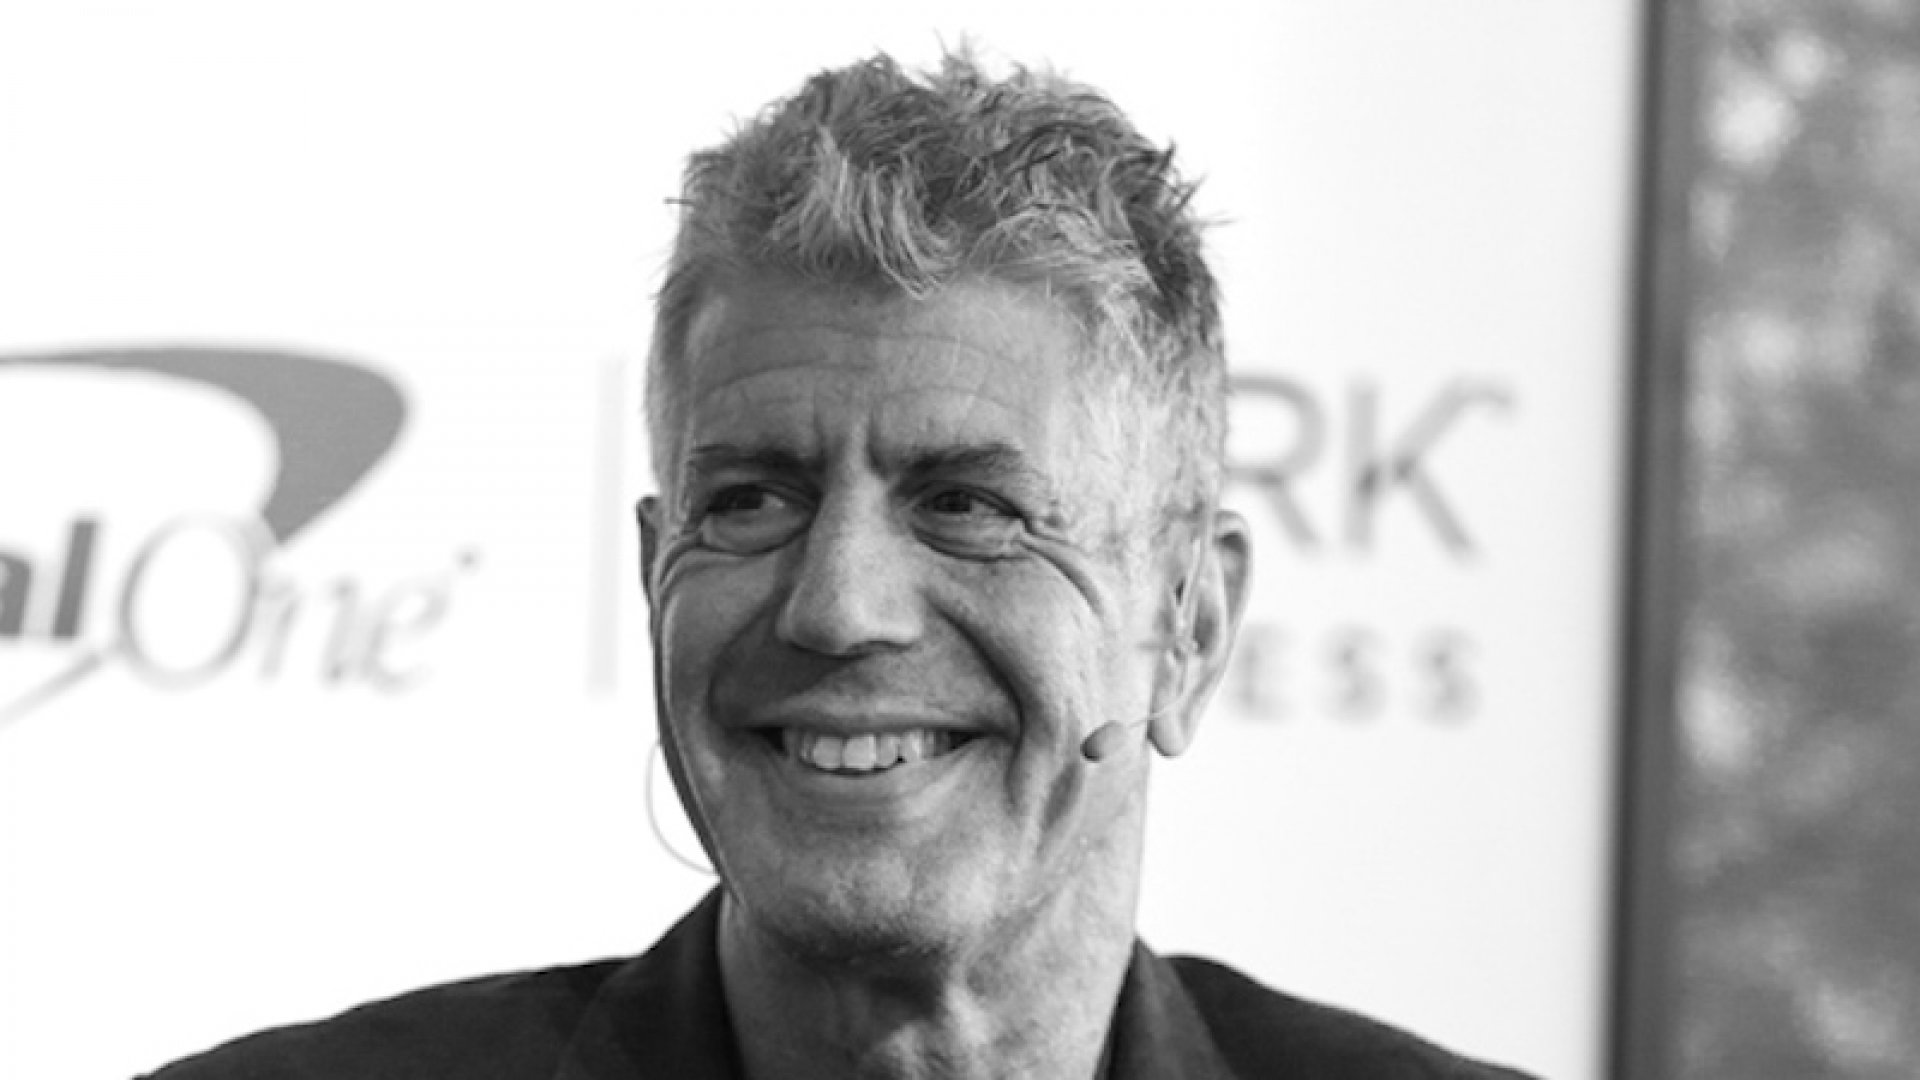 TV personality Anthony Bourdain at the South by Southwest Interactive festival.